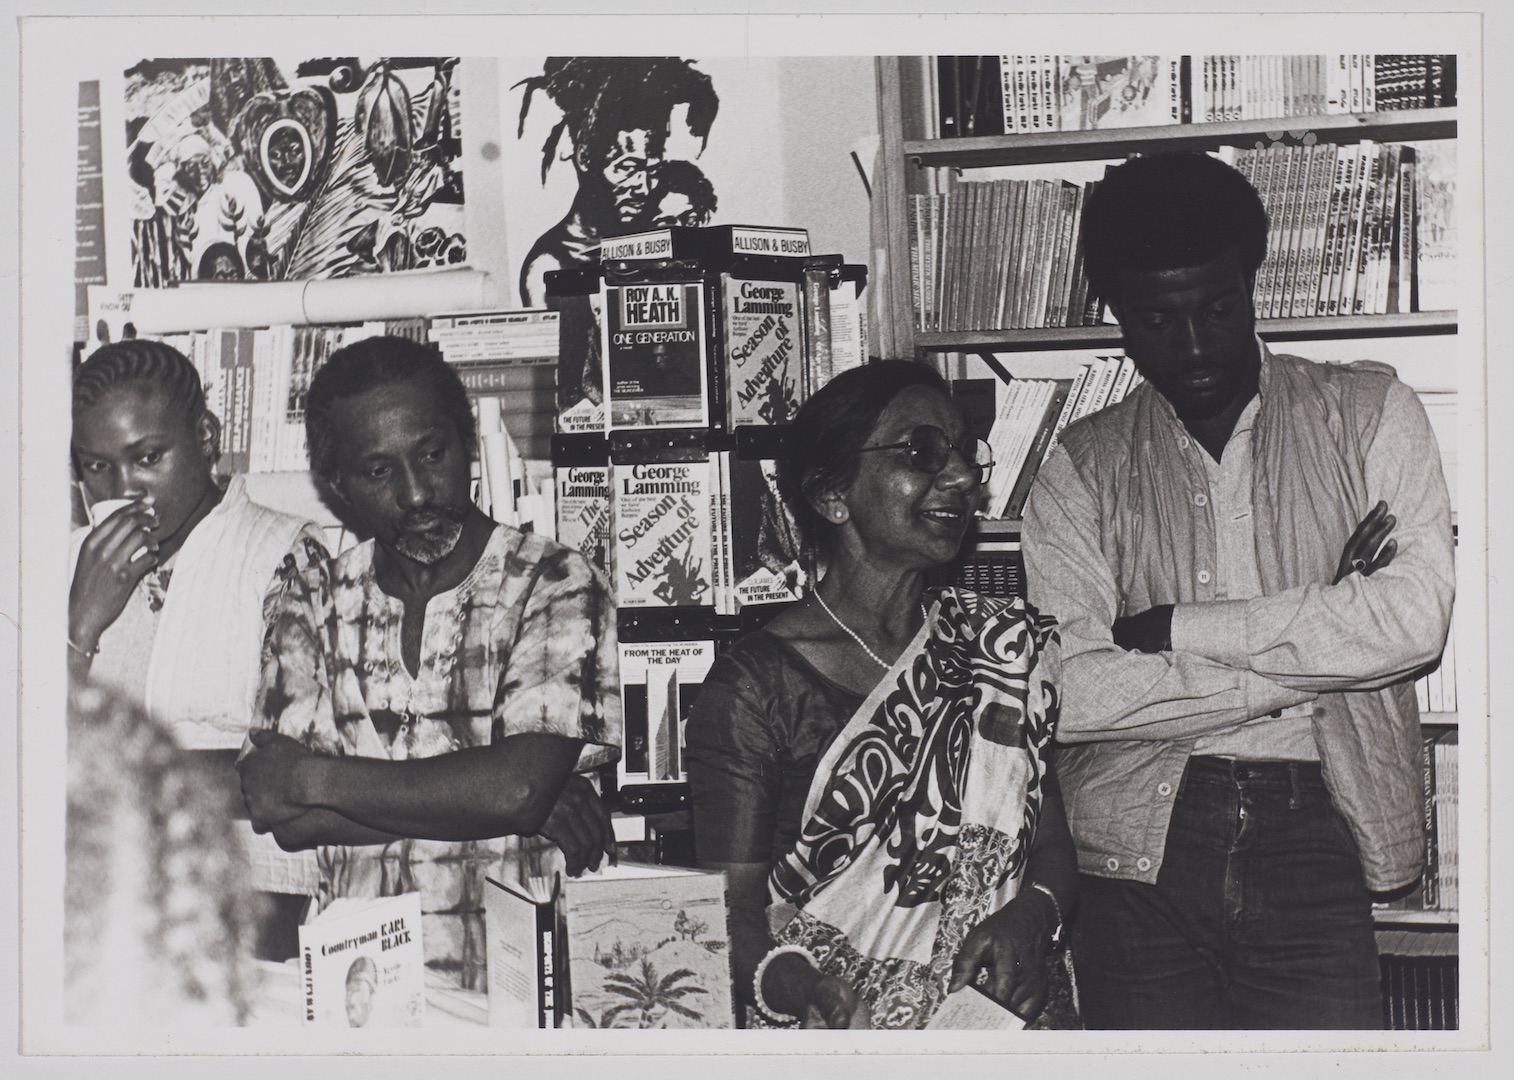 18 L to R - Eric Huntley _ Keith Waite at Bookshop event. c1970s. Huntley Archives at London Metropo